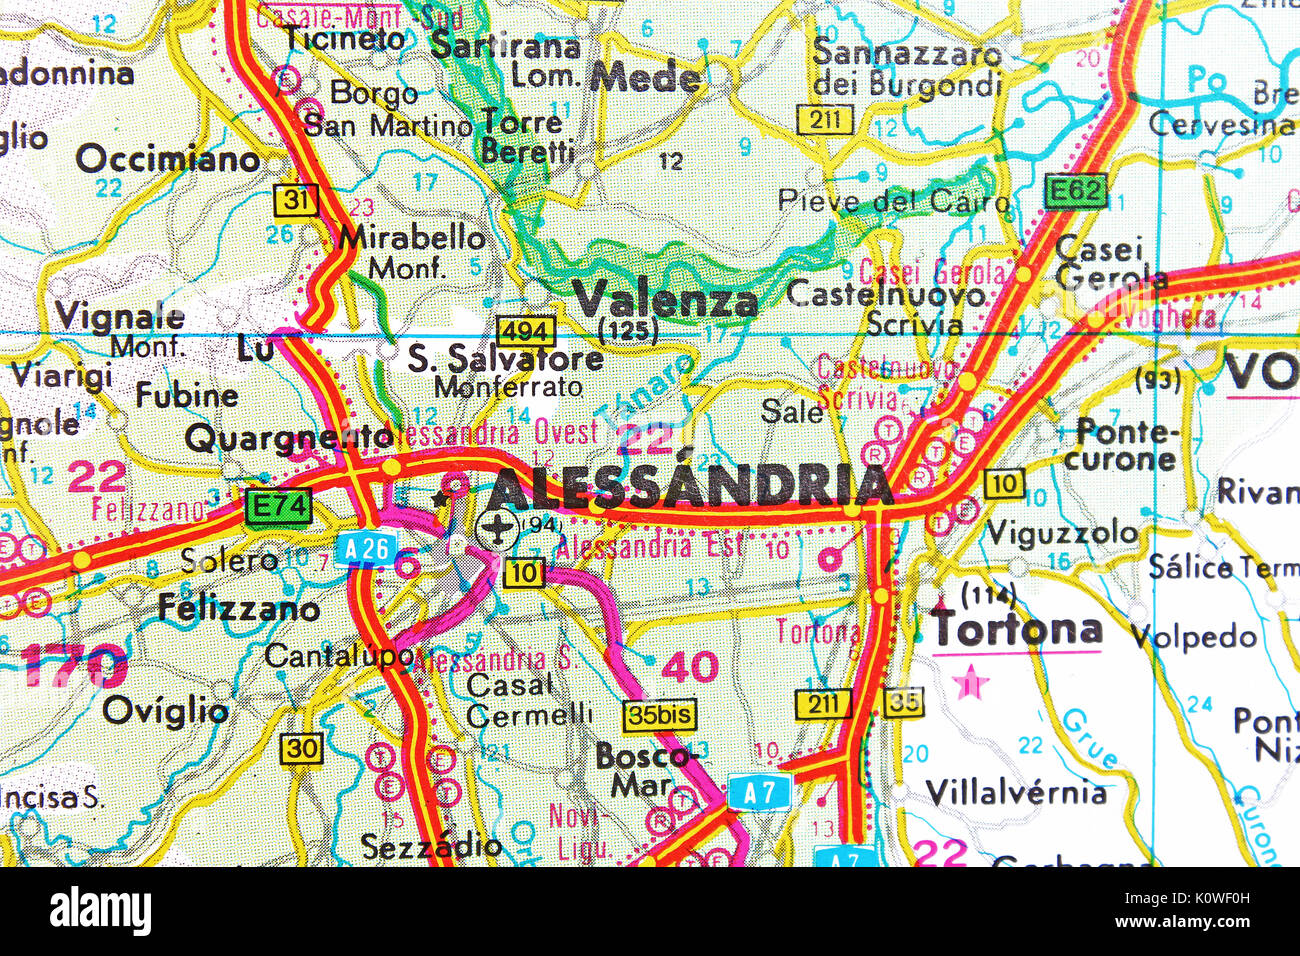 Alessandria map city map road map Stock Photo Royalty Free Image